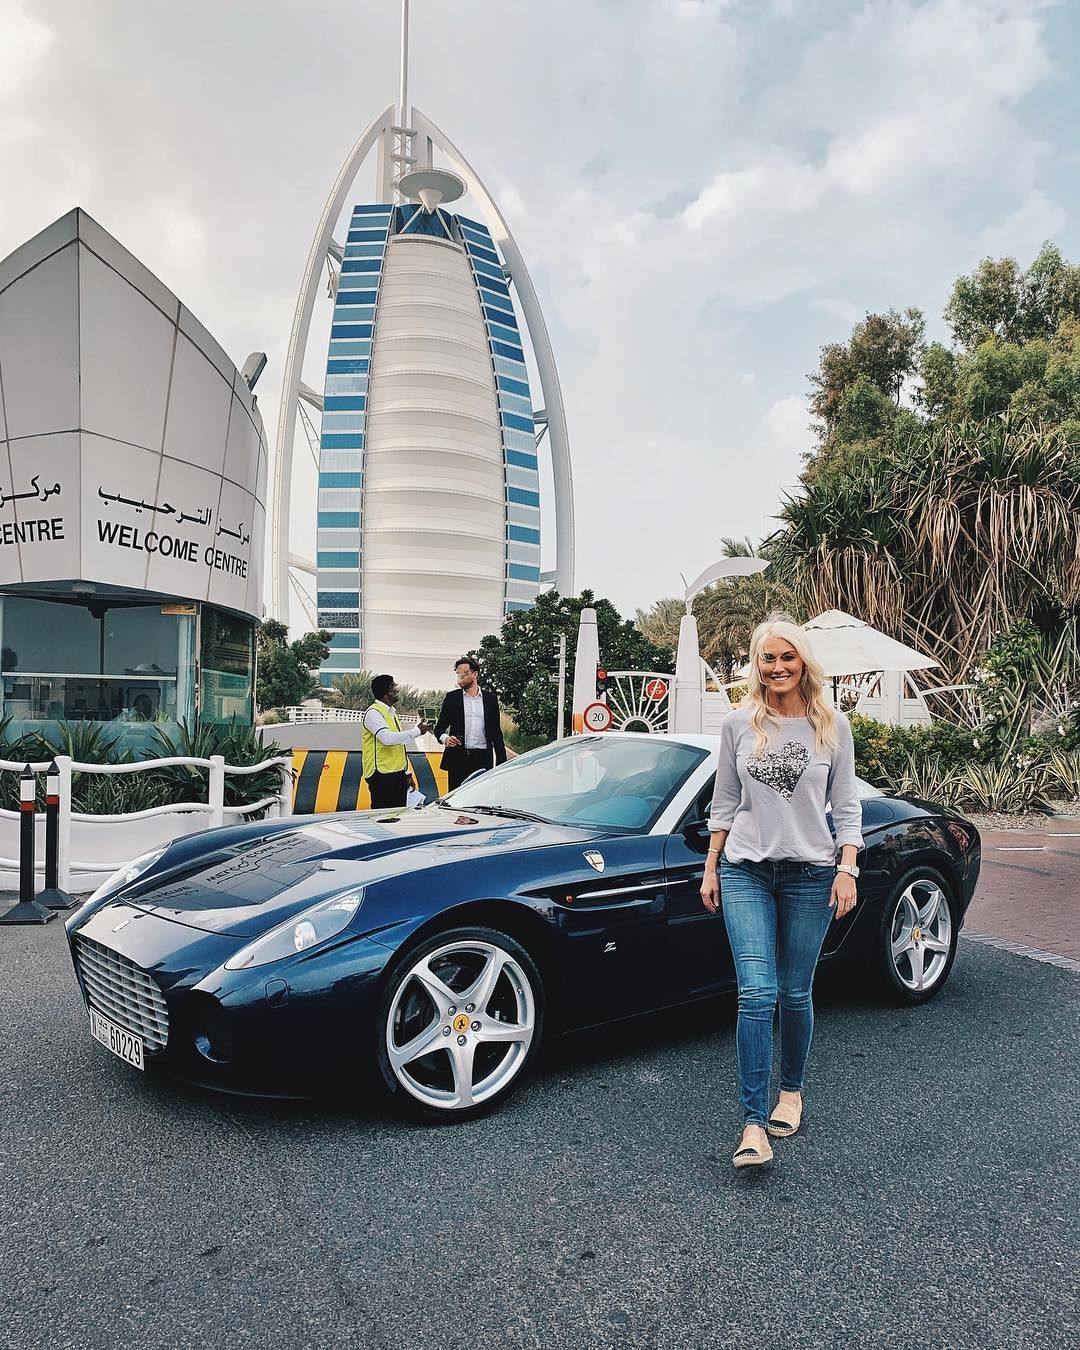 Alex That Girl With The Cars On Instagram Guess The Car Theonlyoneintheworld I Ve Got A Special Youtube Vid Coming Out Th Car Super Cars Car Girls